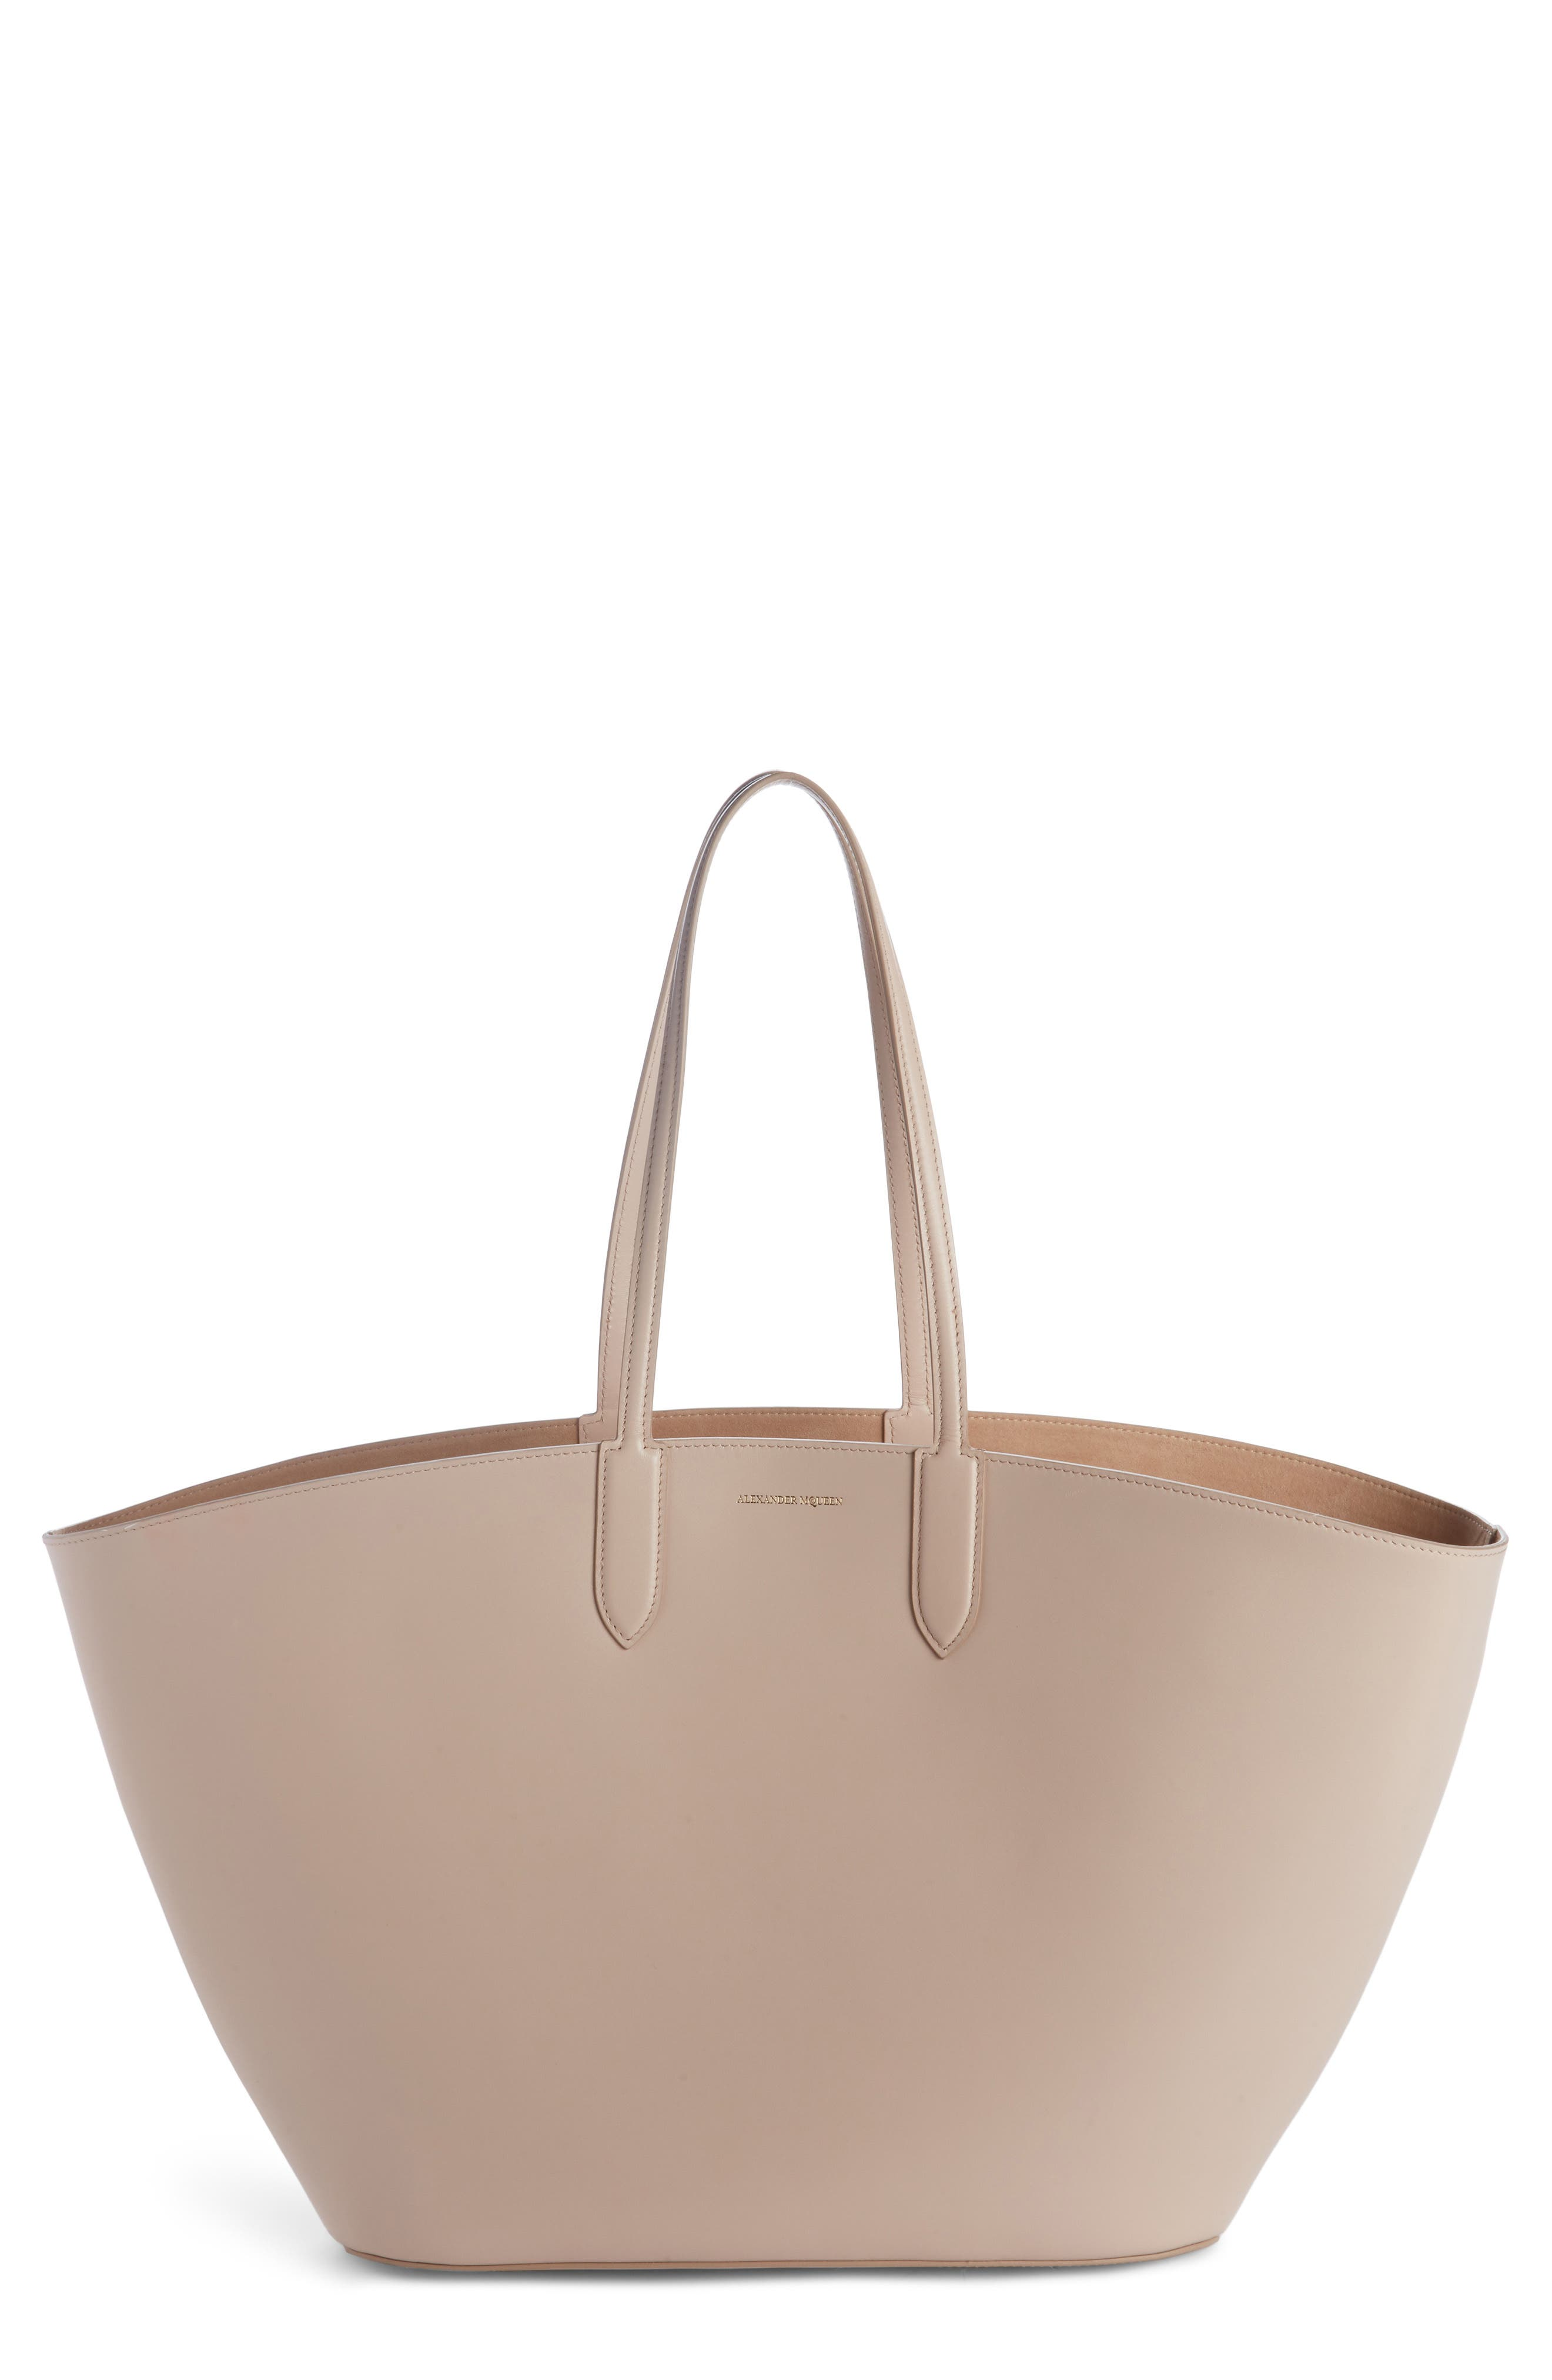 Alexander McQueen East/West Calfskin Leather Tote